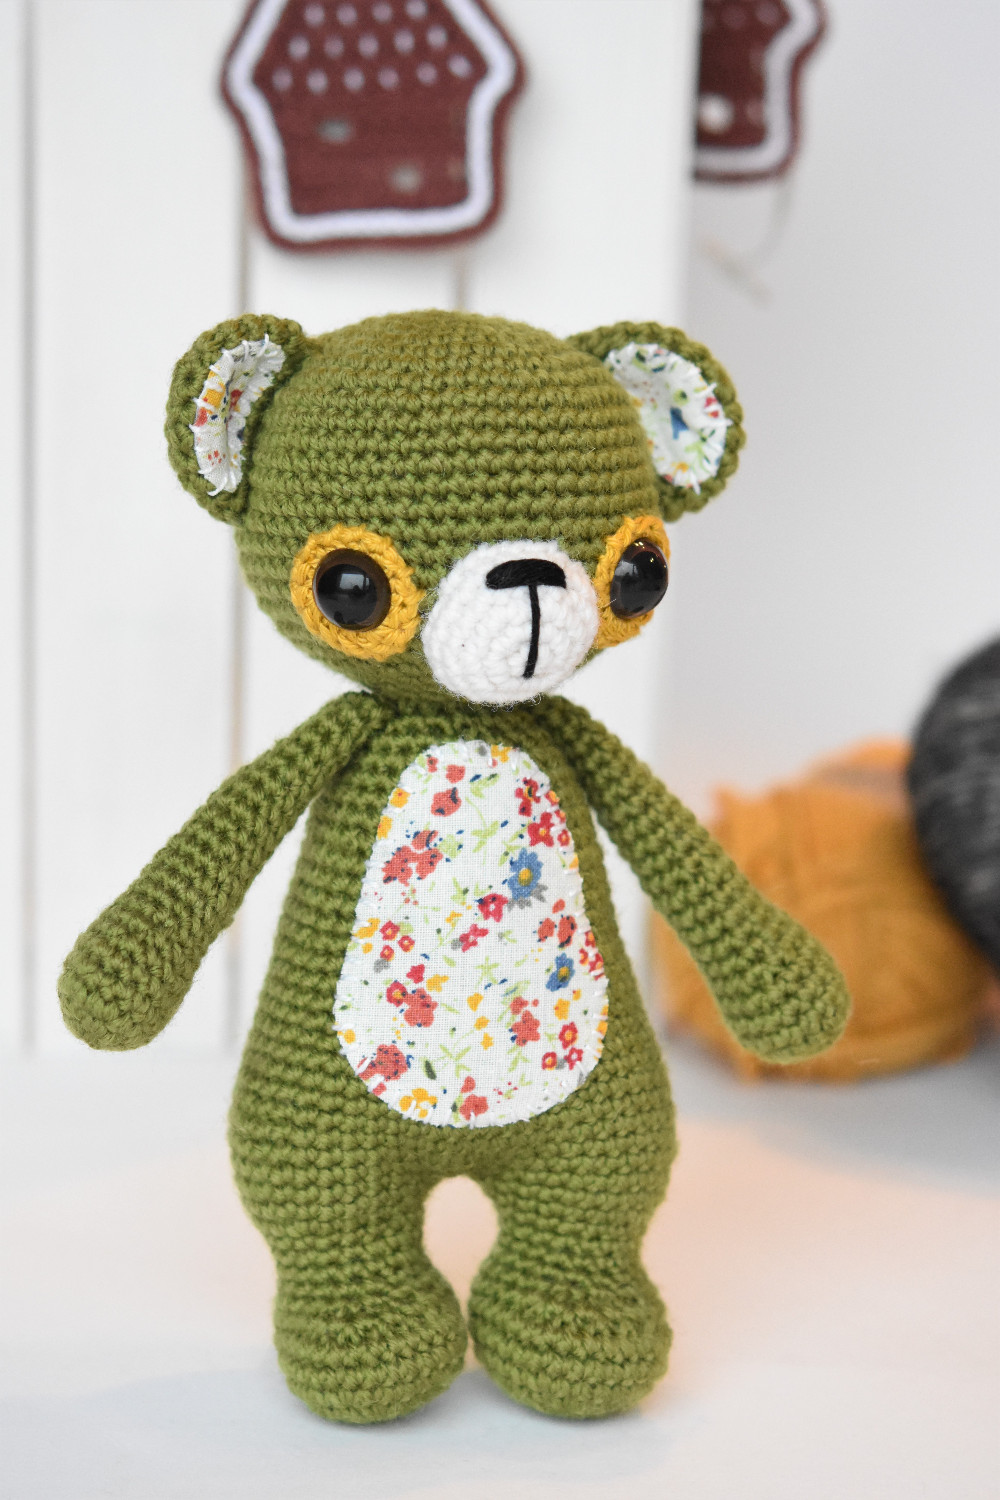 Teddy Bear Crochet Pattern Toys And More | The WHOot | 1500x1000